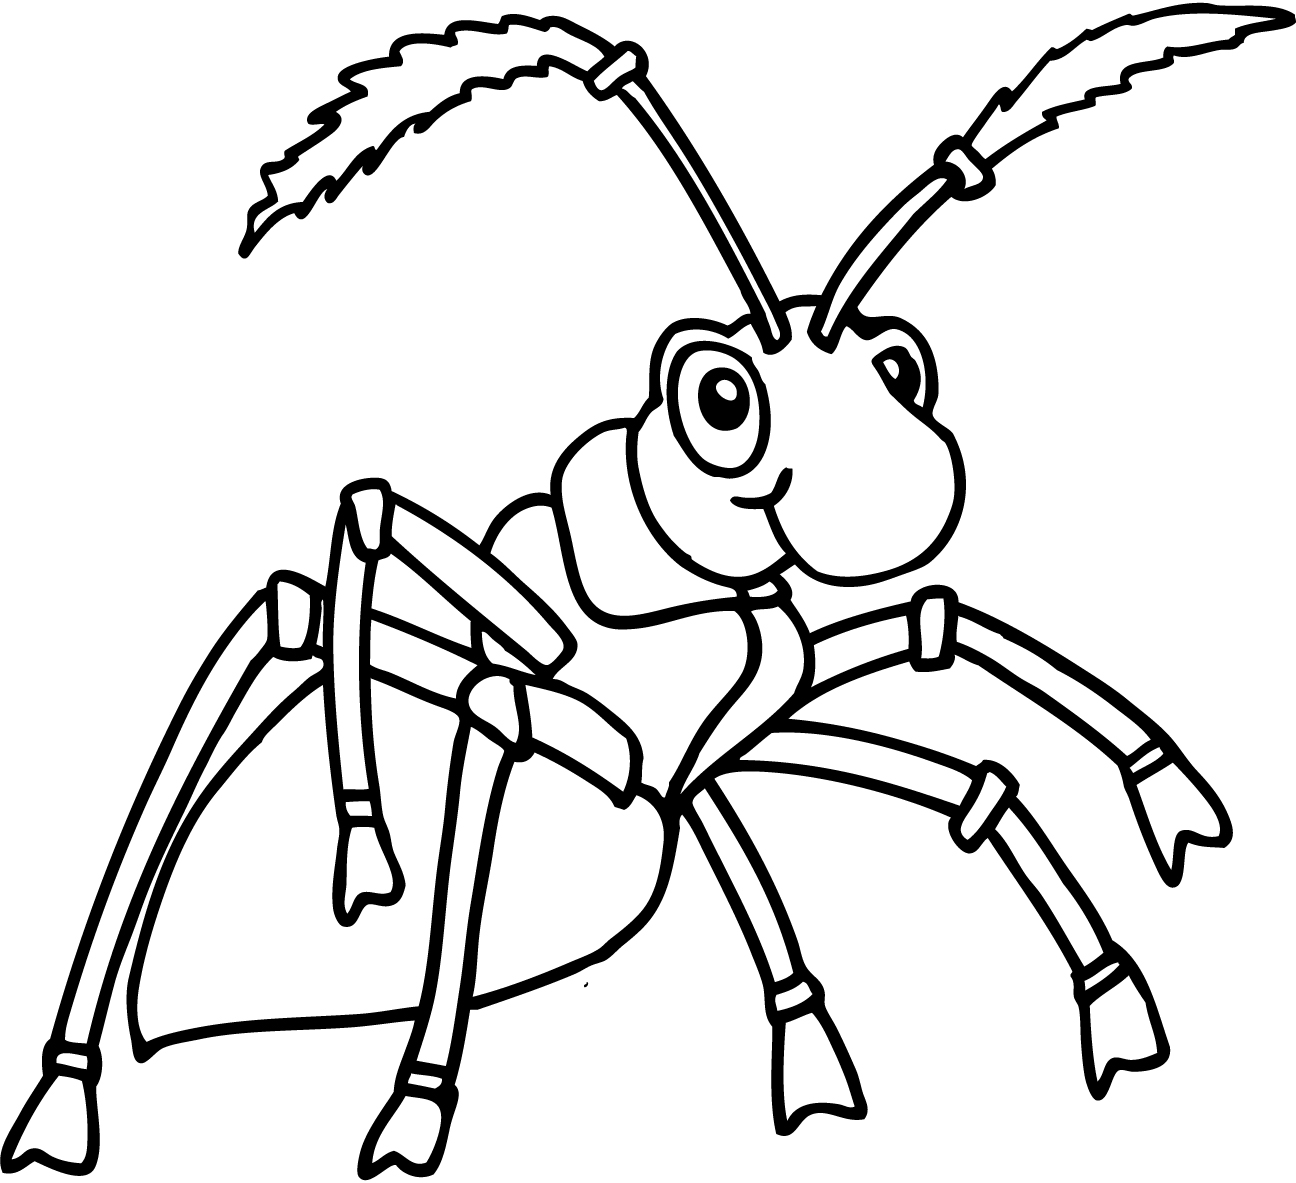 ant picture to color free printable ant coloring pages for kids ant color to picture